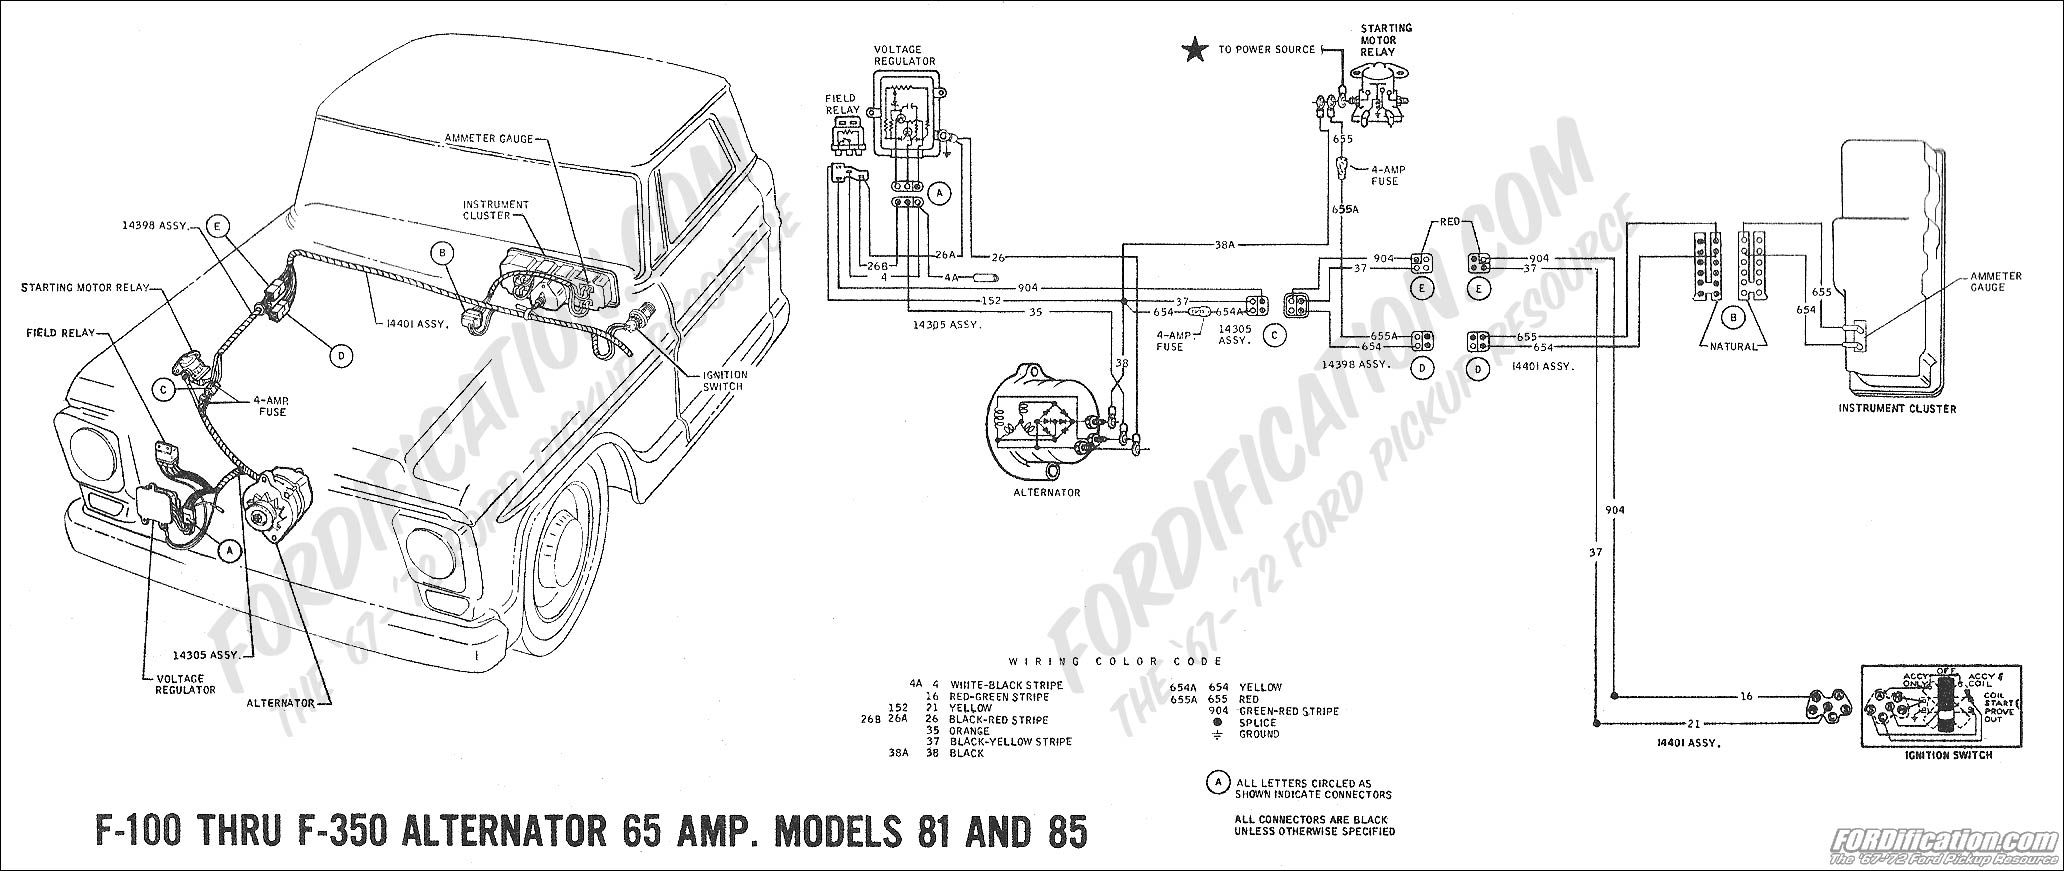 1978 ford f250 wiring diagram